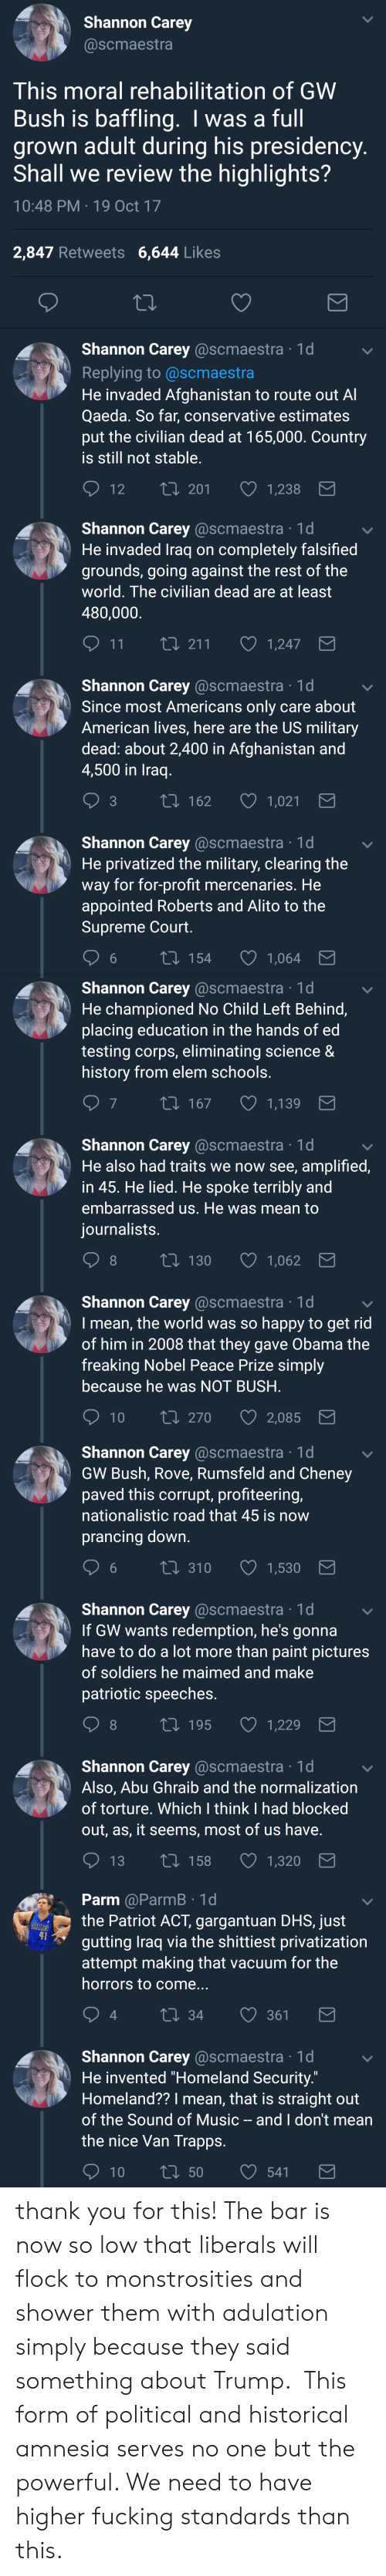 the horrors: Shannon Carey  @scmaestra  This moral rehabilitation of GWW  Bush is baffling. I was a full  grown adult during his presidency  Shall we review the highlights?  10:48 PM 19 Oct 17  2,847 Retweets 6,644 Likes  Shannon Carey @scmaestra 1d  Replying to @scmaestra  He invaded Afghanistan to route out A  Qaeda. So far, conservative estimates  put the civilian dead at 165,000. Country  is still not stable  12 T  t0 201 1,238   Shannon Carey @scmaestra 1d  He invaded Traq on completely falsified  grounds, going against the rest of the  world. The civilian dead are at least  480,000  11  1,247  Shannon Carey @scmaestra 1d  Since most Americans only care about  American lives, here are the US military  dead: about 2,400 in Afghanistan and  4,500 in Iraq  t 162  1,021  Shannon Carey @scmaestra 1d  He privatized the military, clearing the  way for for-profit mercenaries. He  appointed Roberts and Alito to the  Supreme Court  6  154  1,064   Shannon Carey @scmaestra 1d  He championed No Child Left Behind,  placing education in the hands of ed  testing corps, eliminating science &  history from elem schools  7  167  1,139  Shannon Carey @scmaestra 1d  He also had traits we now see, amplified,  in 45. He lied. He spoke terribly and  embarrassed us. He was mean to  iournalists  8  130  1,062  Shannon Carey @scmaestra 1d  I mean, the world was so happy to get rid  of him in 2008 that they gave Obama the  freaking Nobel Peace Prize simply  because he was NOT BUSH  10 ti 270  2,085   Shannon Carey @scmaestra 1d  GW Bush, Rove, Rumsfeld and Cheney  paved this corrupt, profiteering,  nationalistic road that 45 is now  prancing down  6 t0 310 1,530  Shannon Carey @scmaestra 1d  If GW wants redemption, he's gonna  have to do a lot more than paint pictures  of soldiers he maimed and make  patriotic speeches  8  t 195  1,229  Shannon Carey @scmaestra 1d  Also, Abu Ghraib and the normalization  of torture. Which I think I had blocked  out, as, it seems, most of us have  13 t0 1